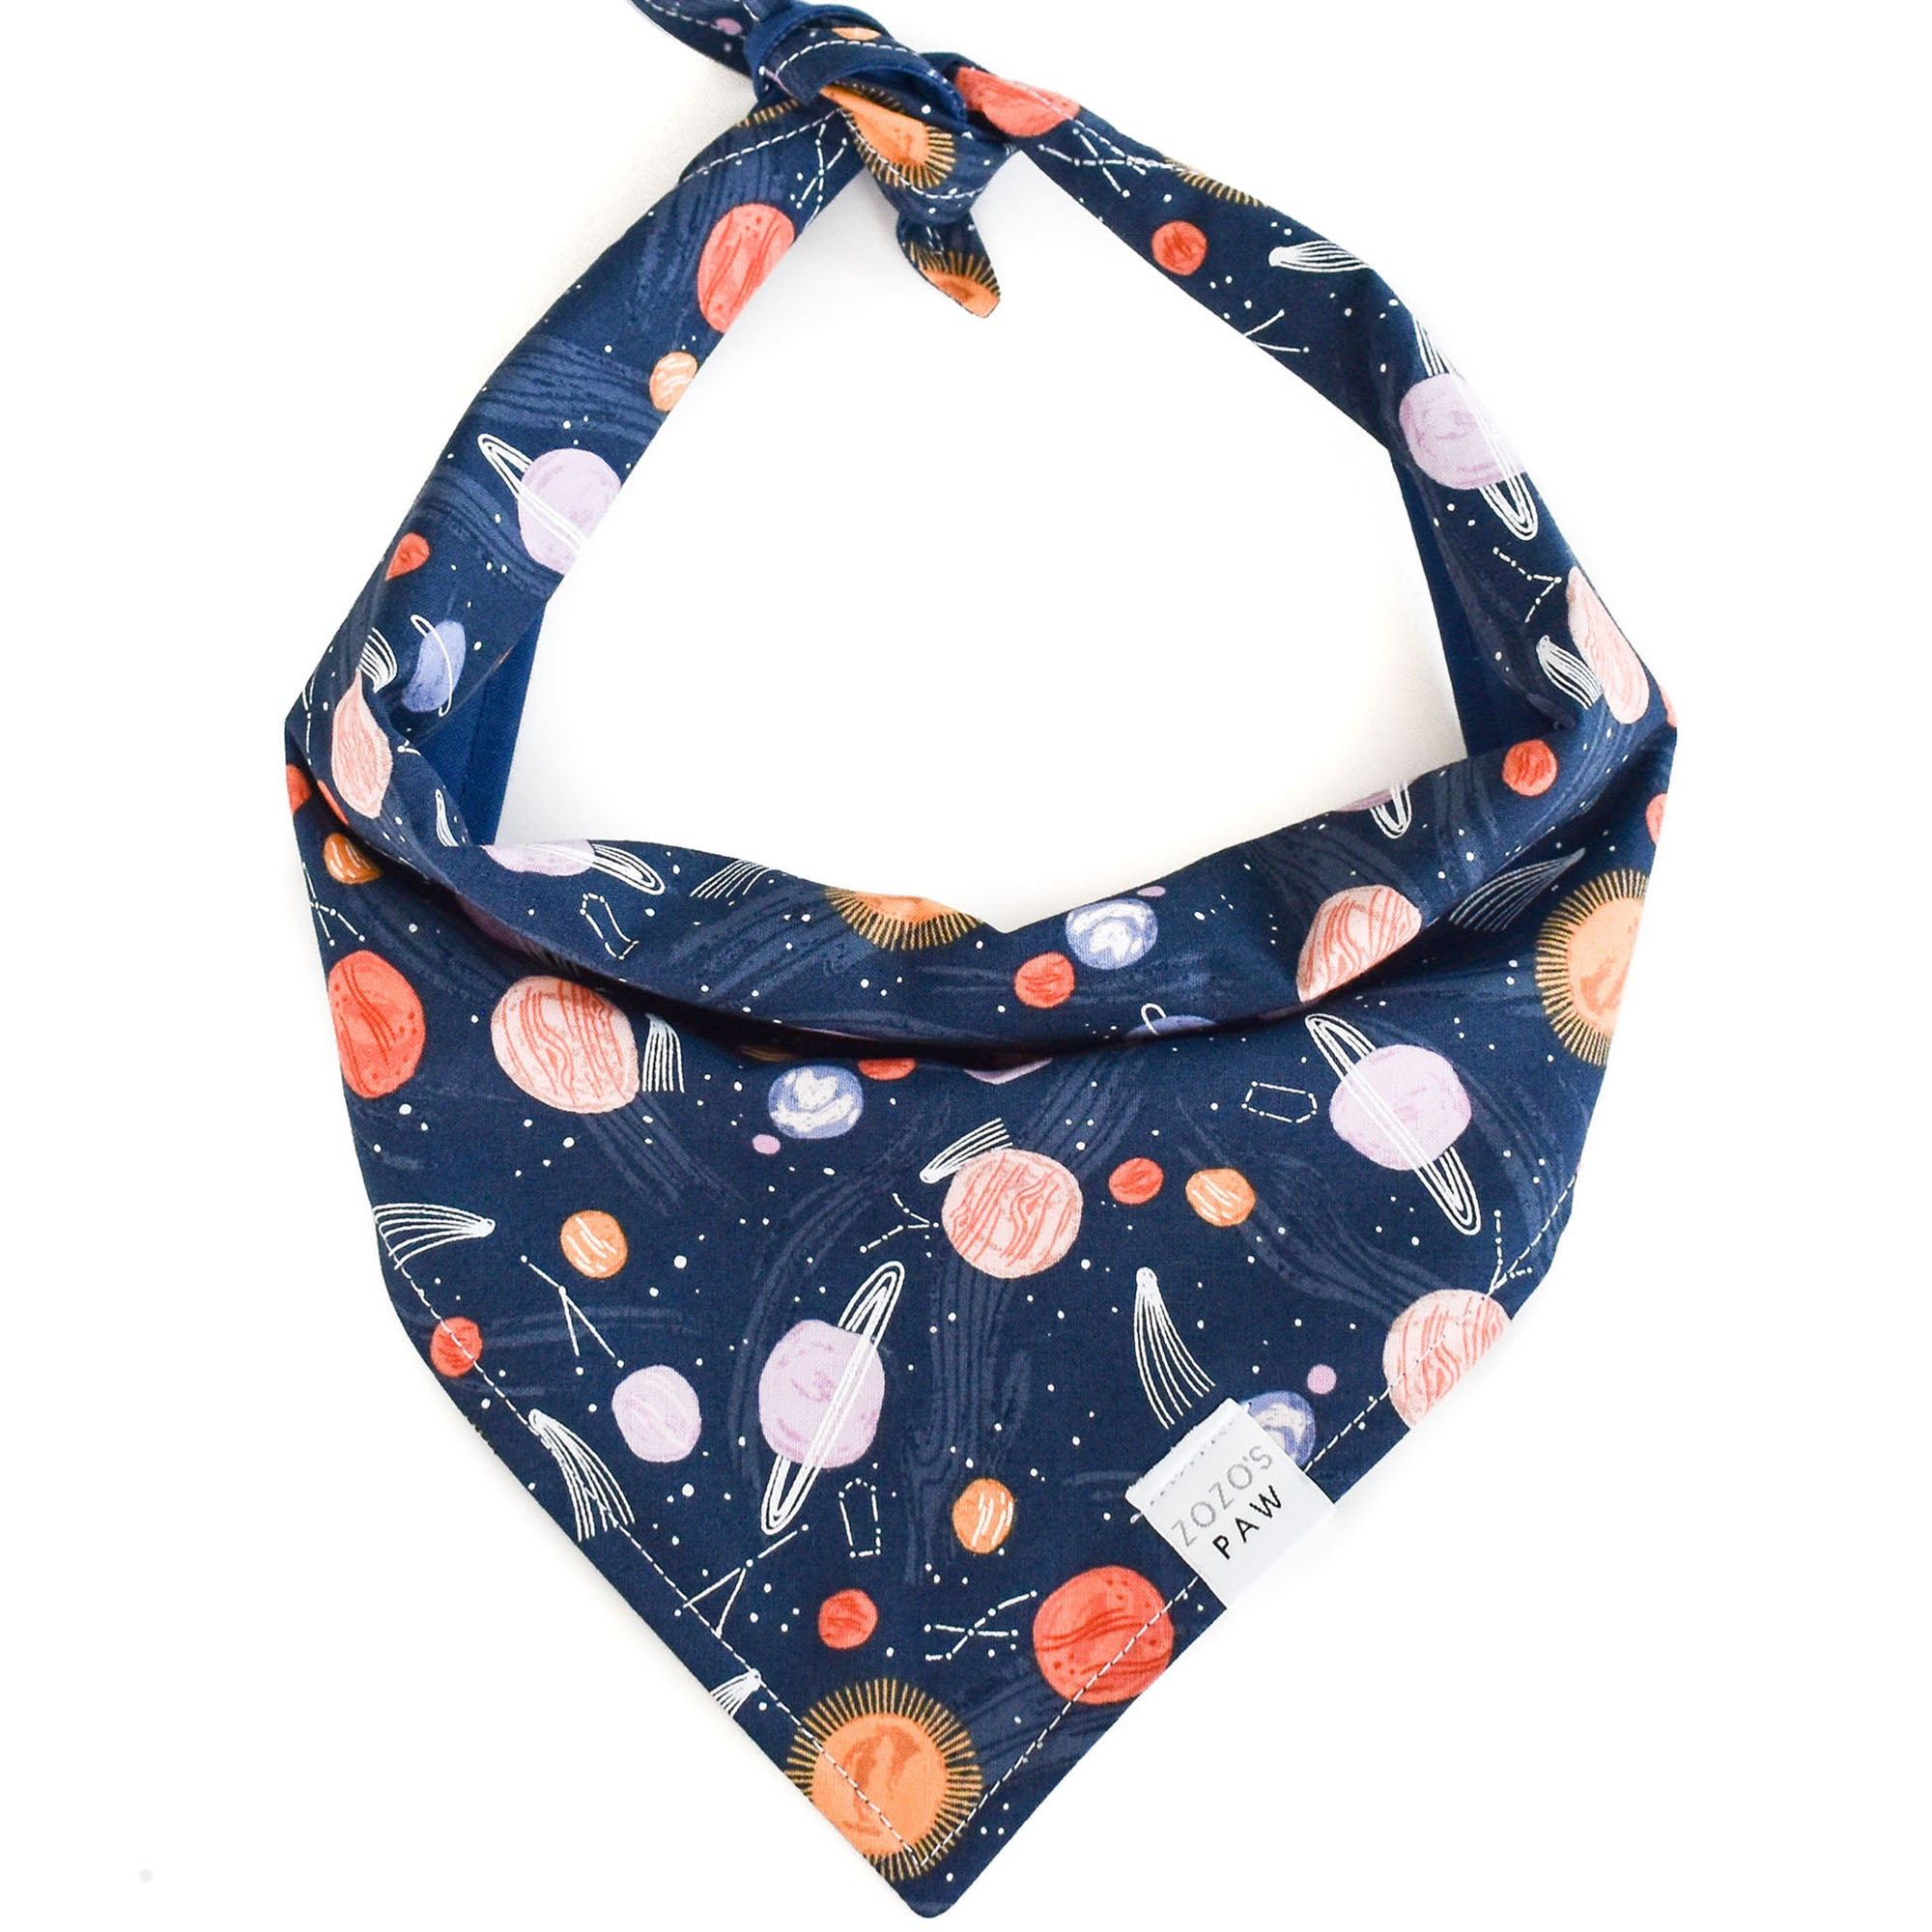 Apollo Dog Bandana